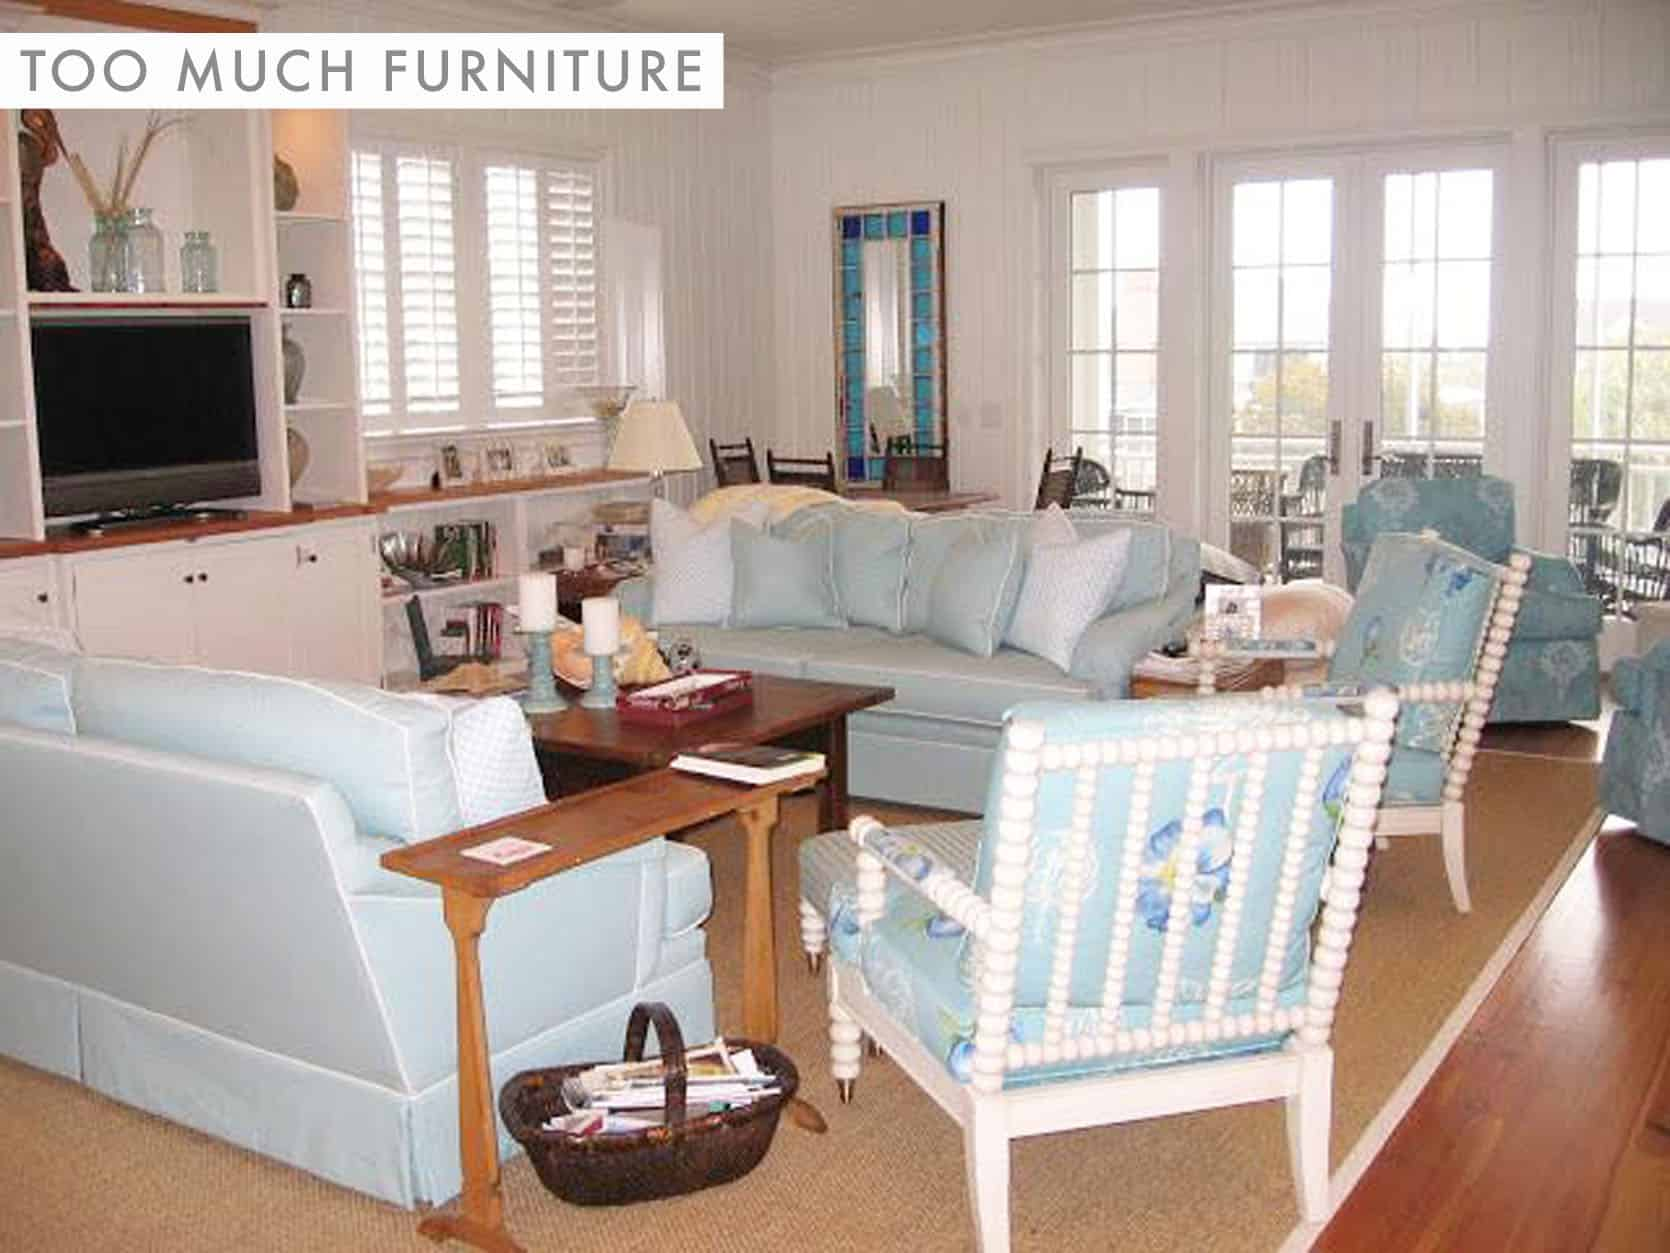 DESIGN MISTAKE: Too Much Furniture In One Room (With Real Life